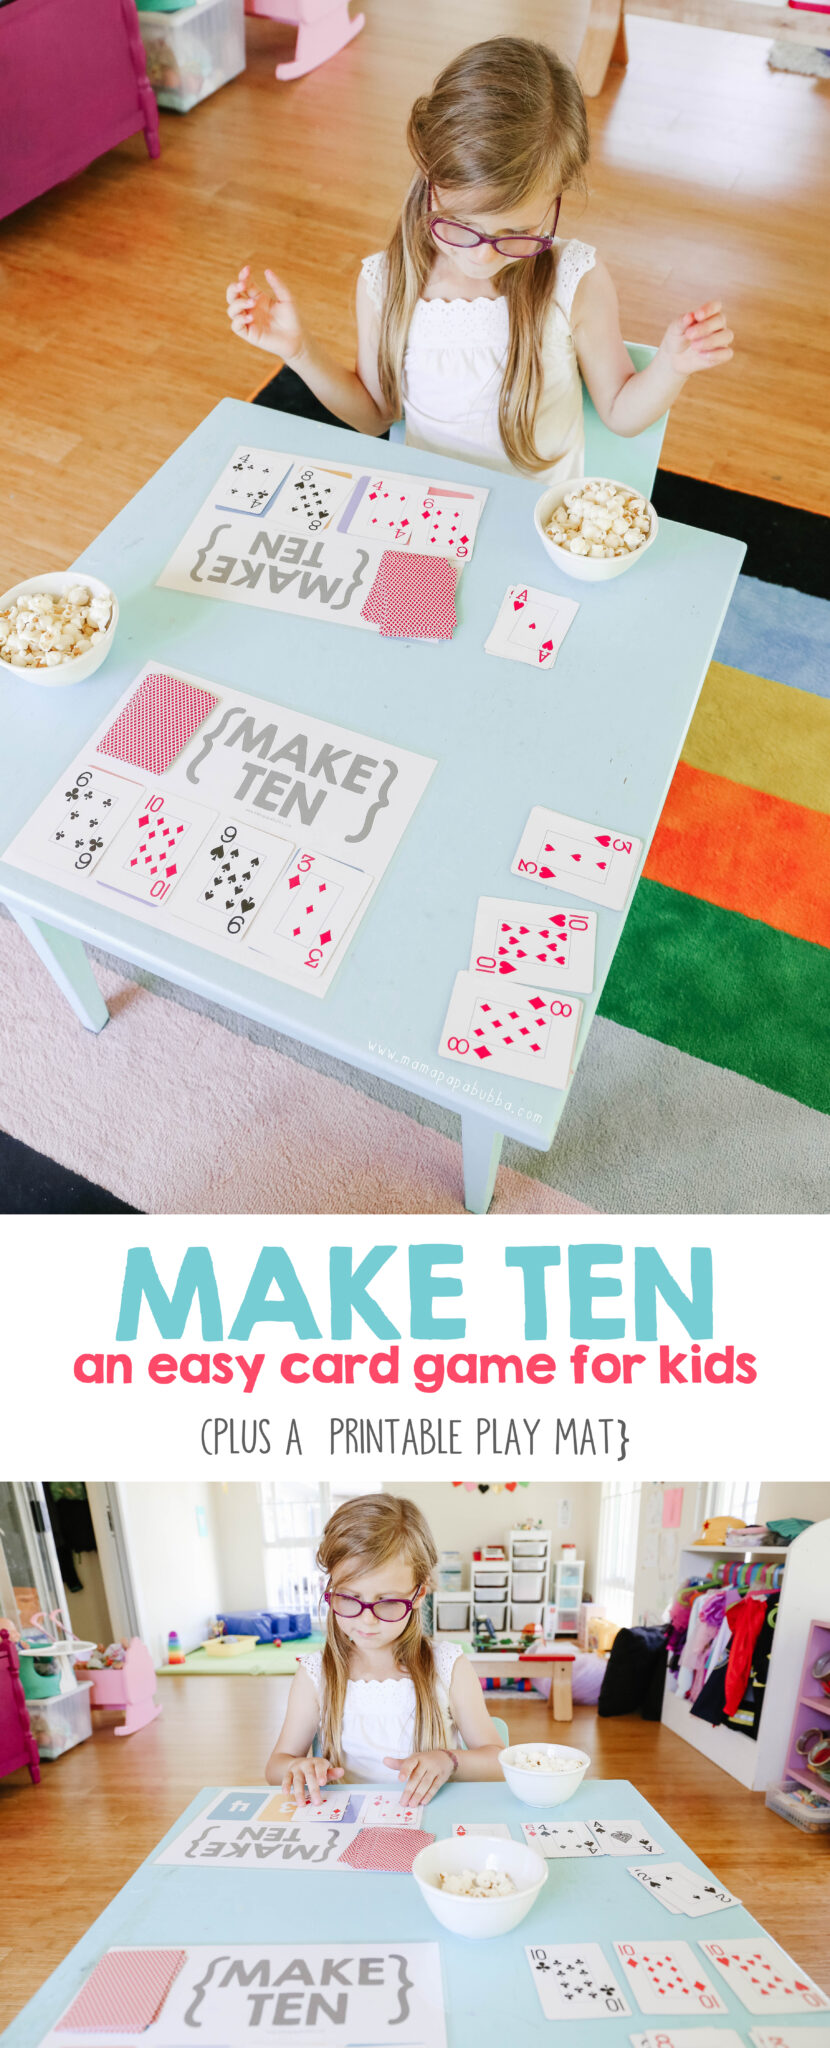 photograph regarding Make Your Own Matching Game Printable referred to as Create 10 an basic card sport for small children - Mama.Papa.Bubba.